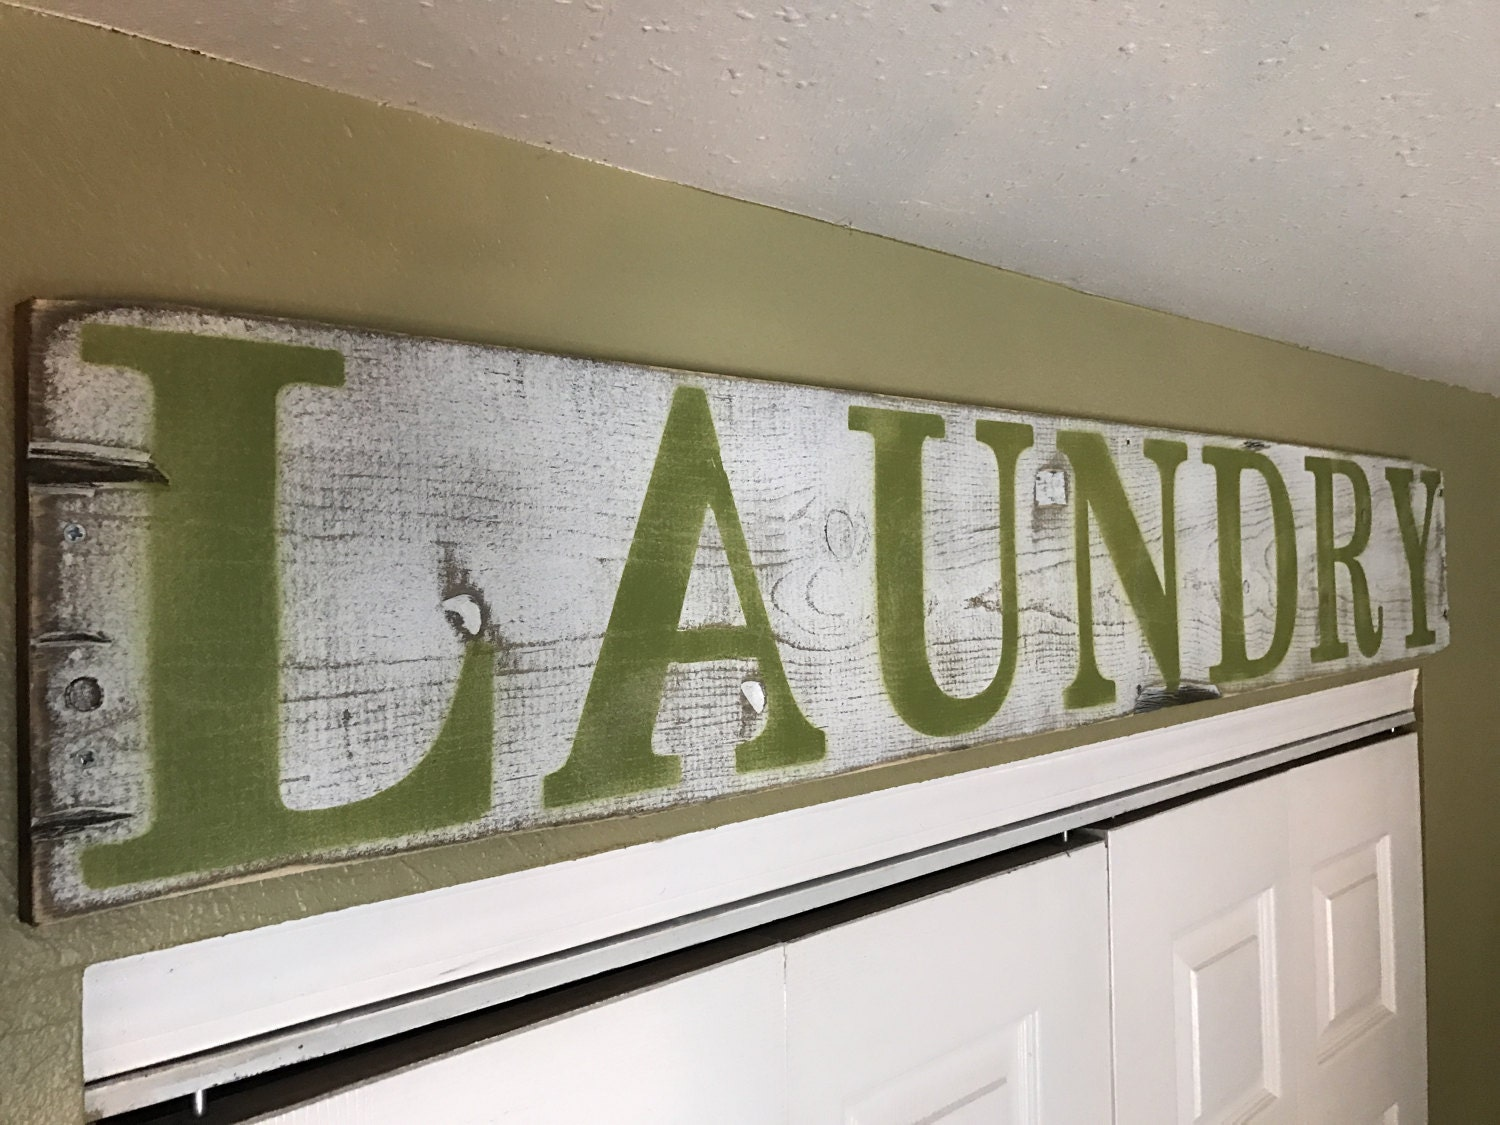 Laundry Wall Decor Laundry Room Decor Laundry Decor Laundry Signs Laundry